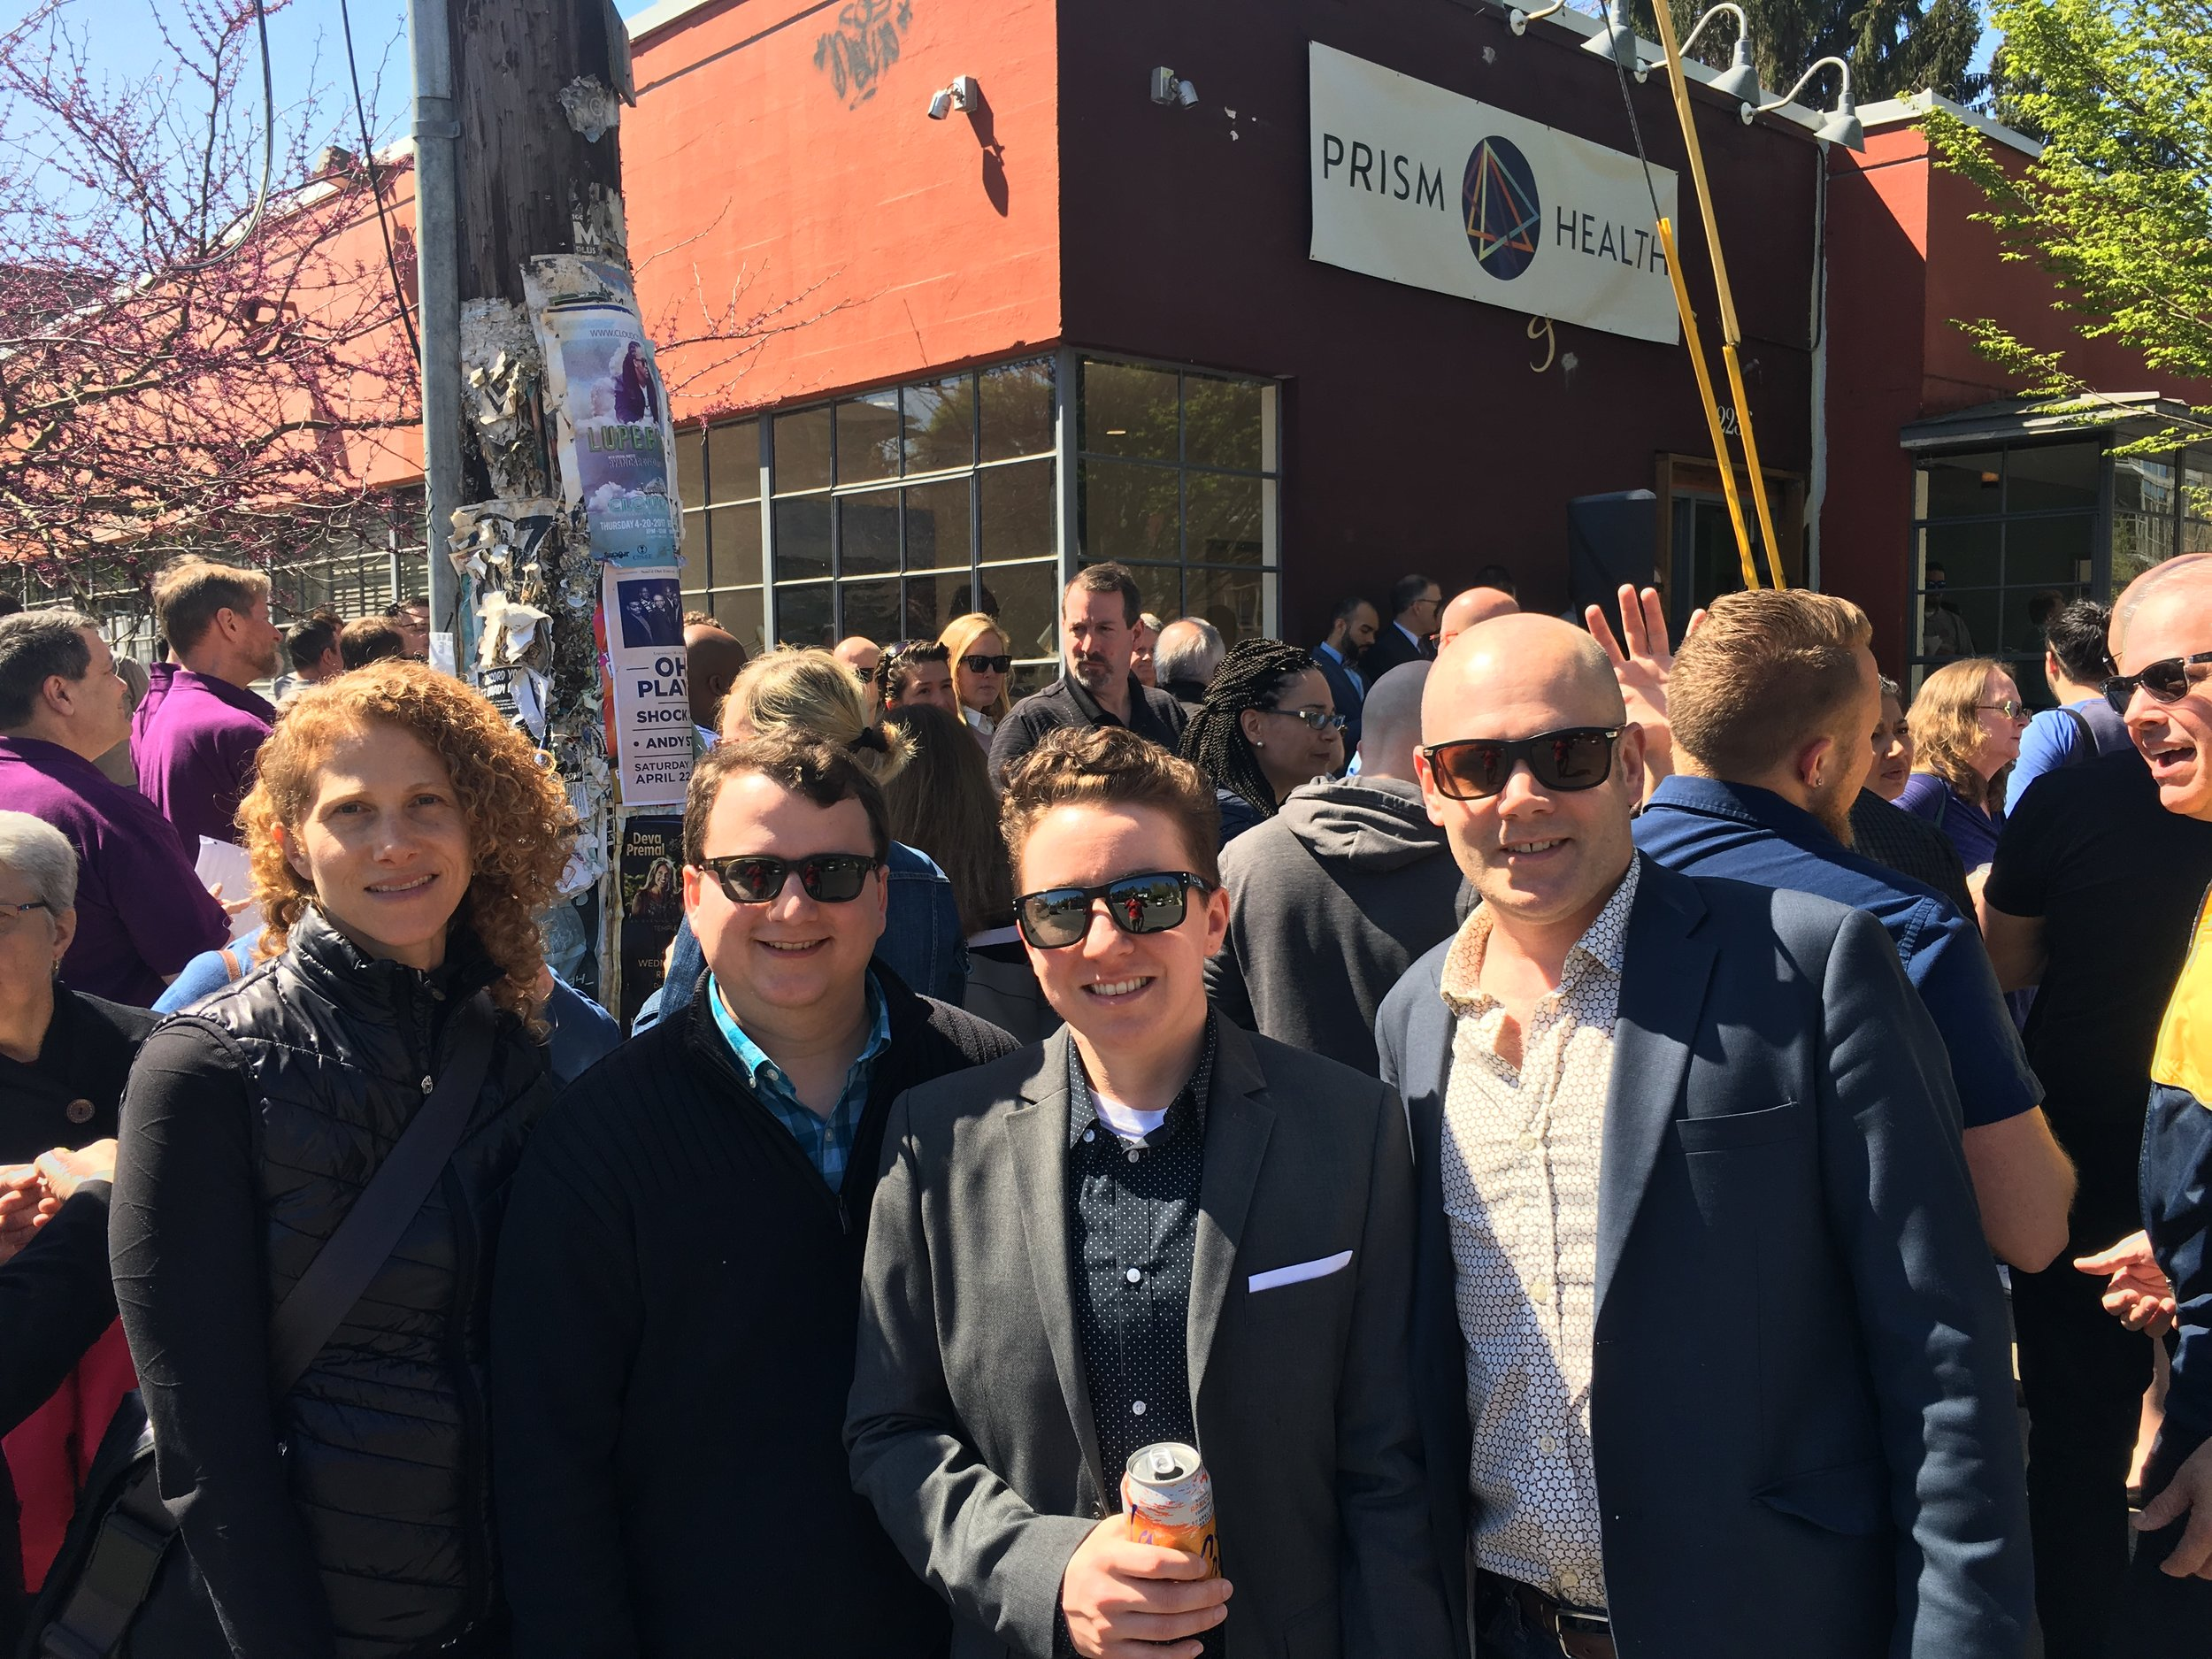 Dominek Architecture Team at the Prism Grand Opening // April 22, 2017